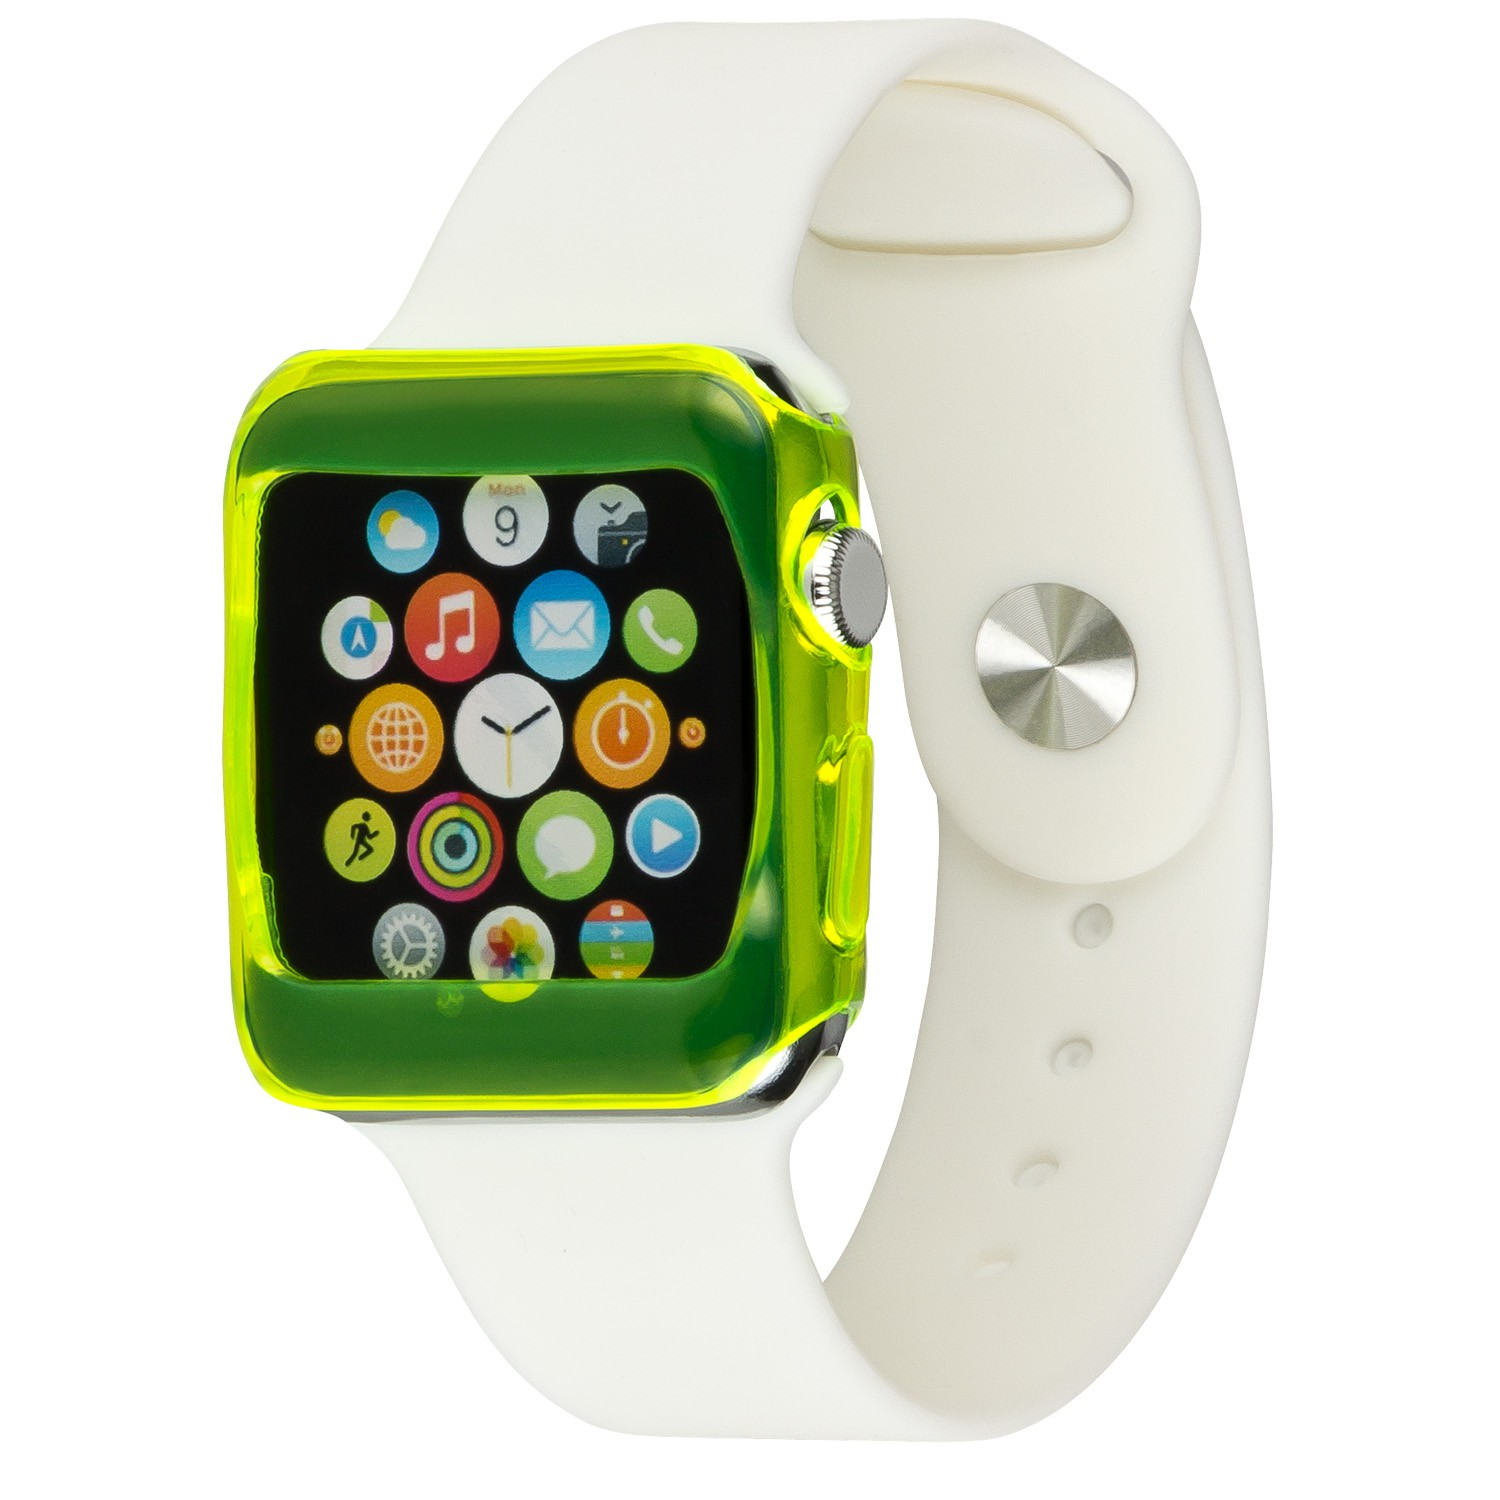 Yemota Pro Slimcase Apple Watch 42mm - Gelb / Transparent